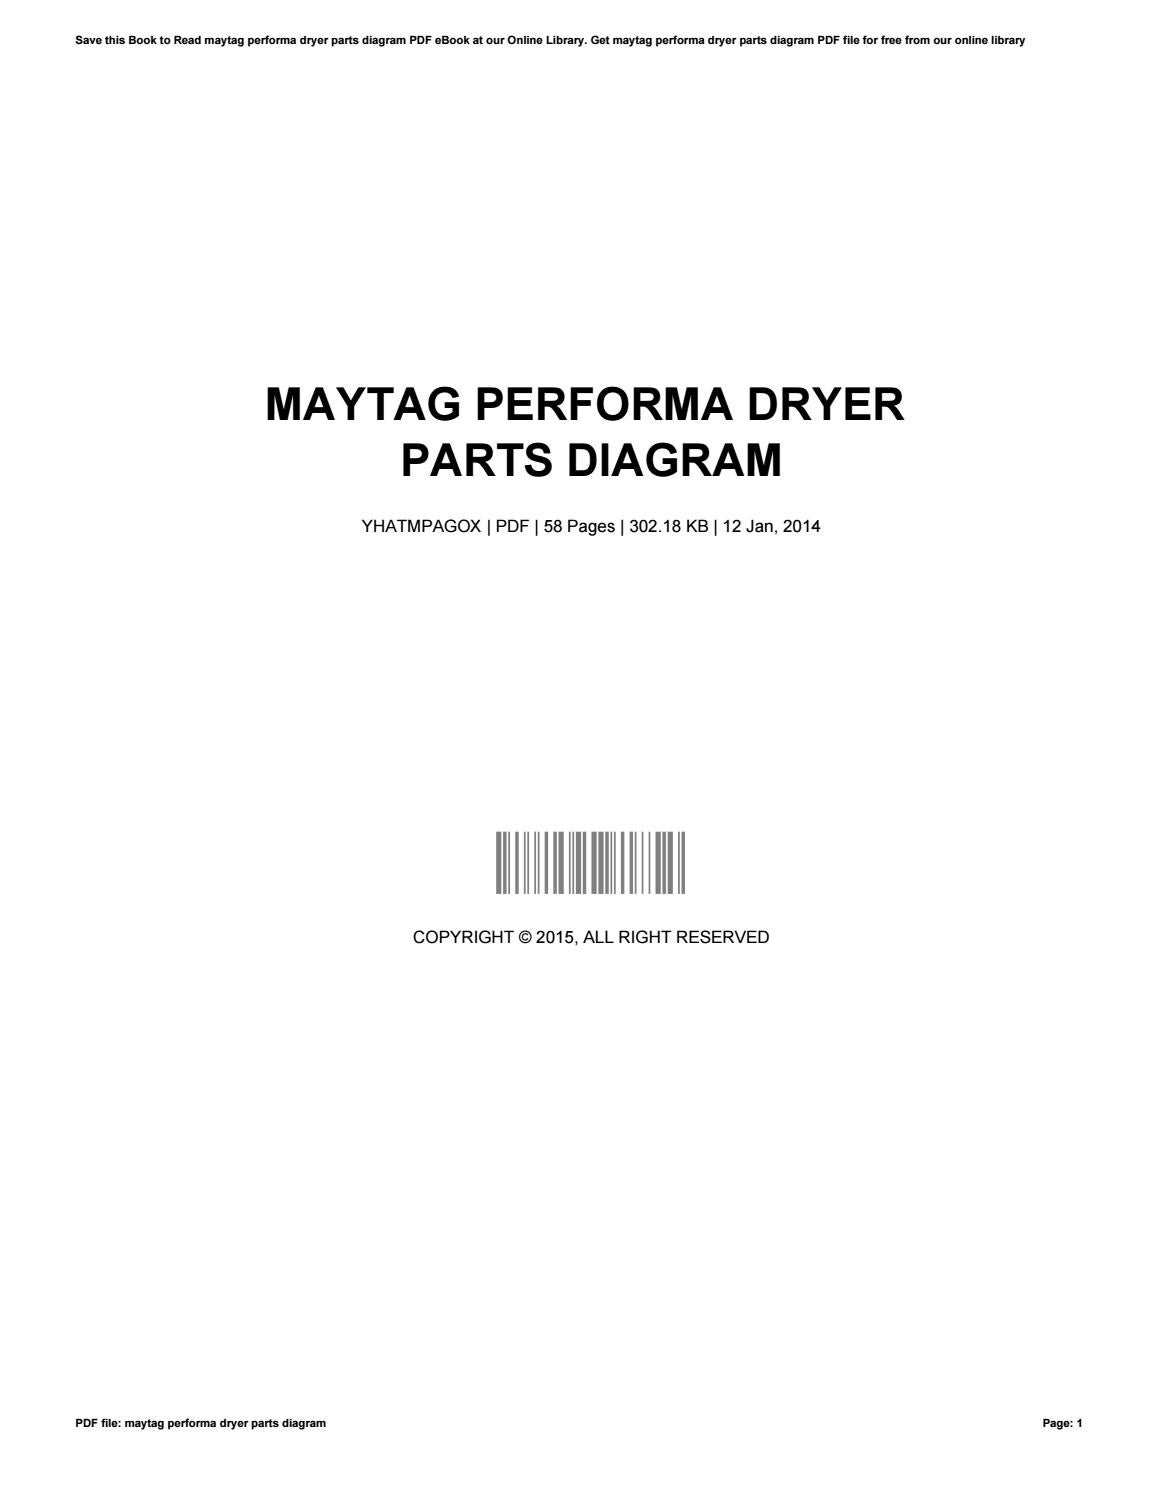 hight resolution of maytag performa dryer parts diagram by bradleygannaway1966